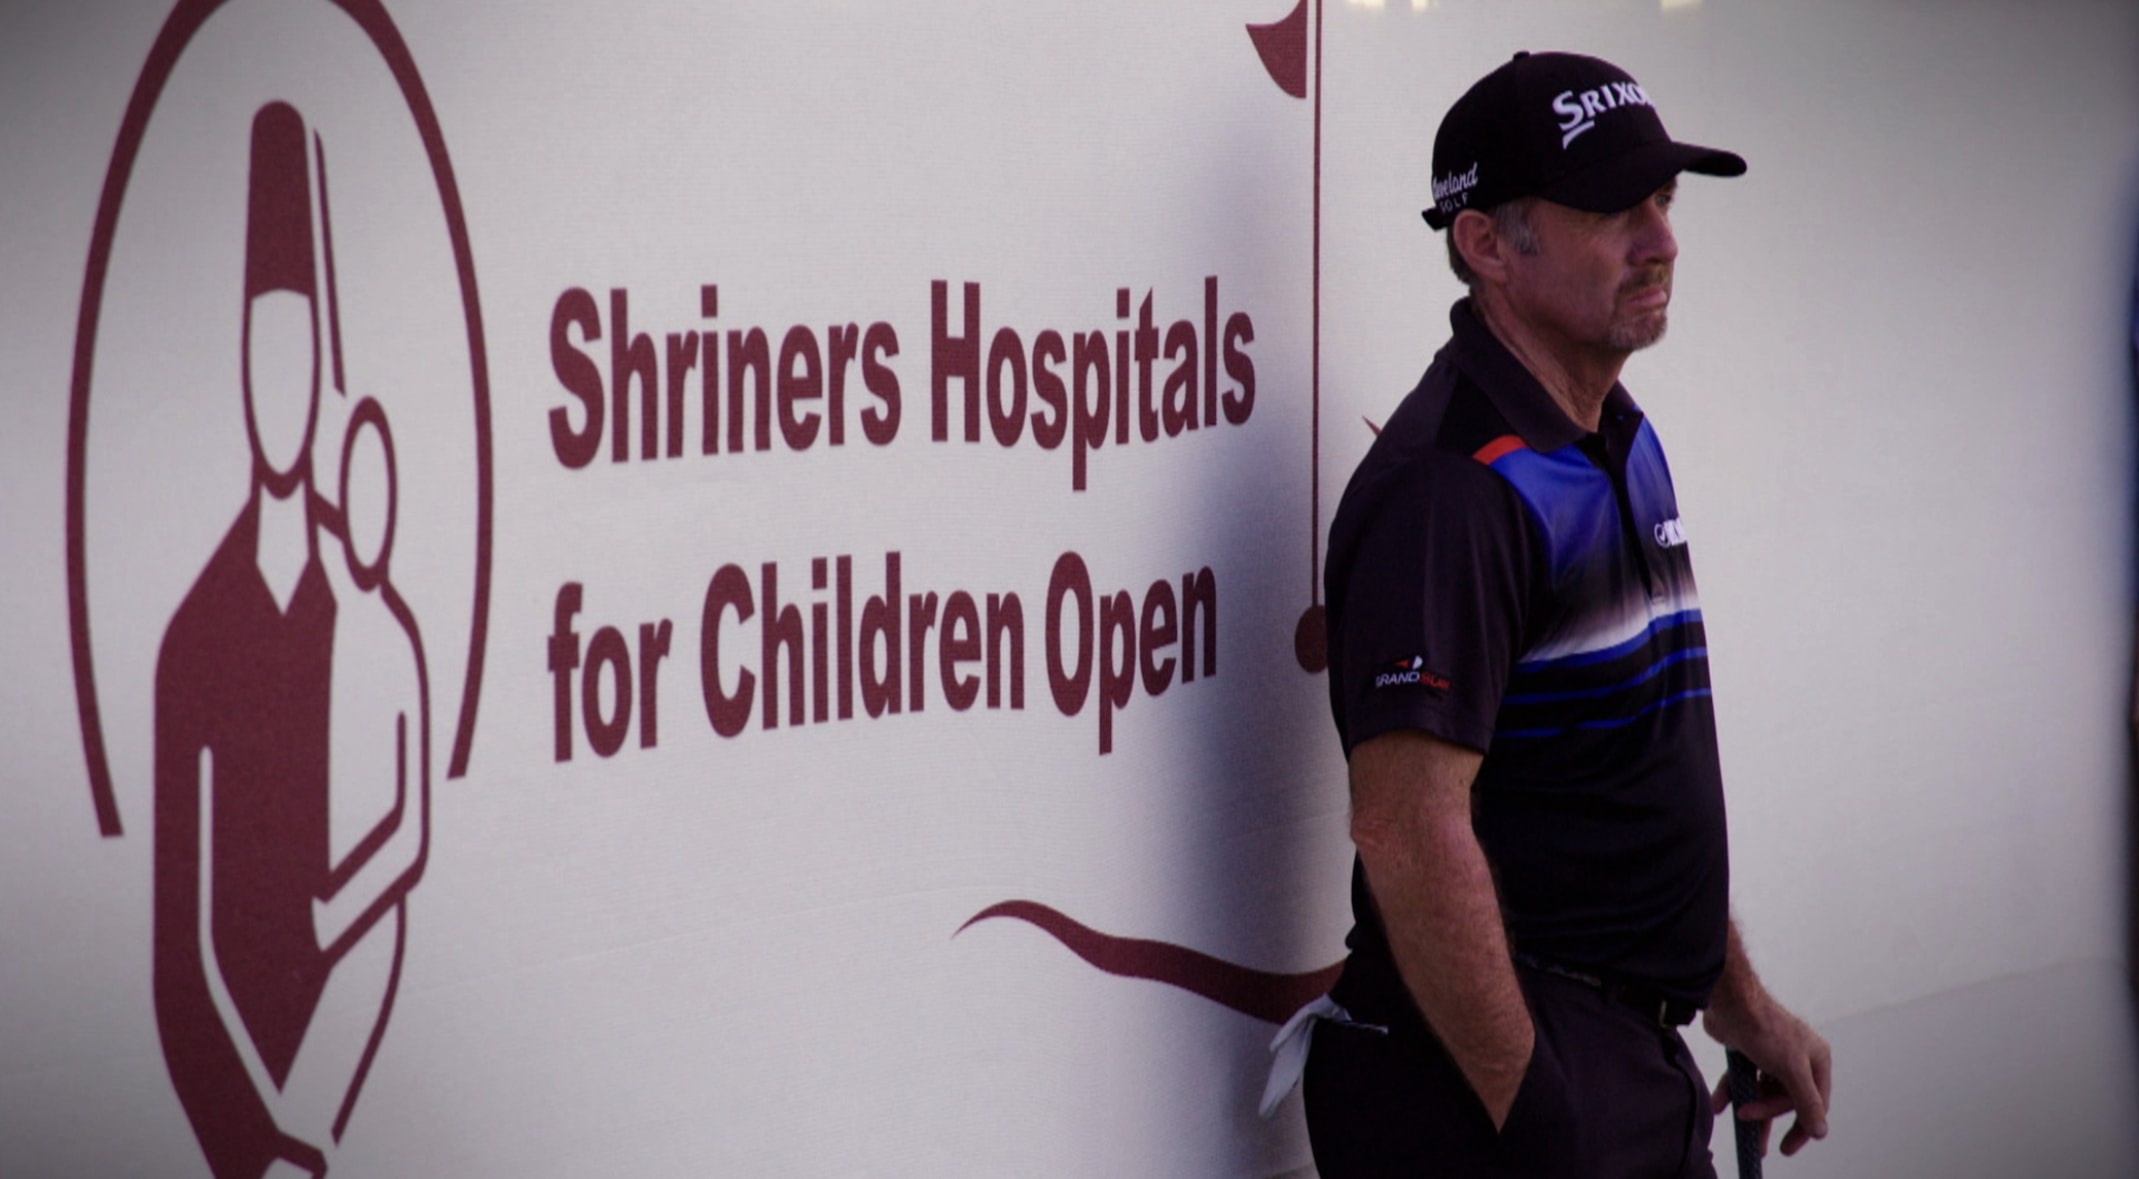 Quick Look At Shriners Hospitals For Children Open